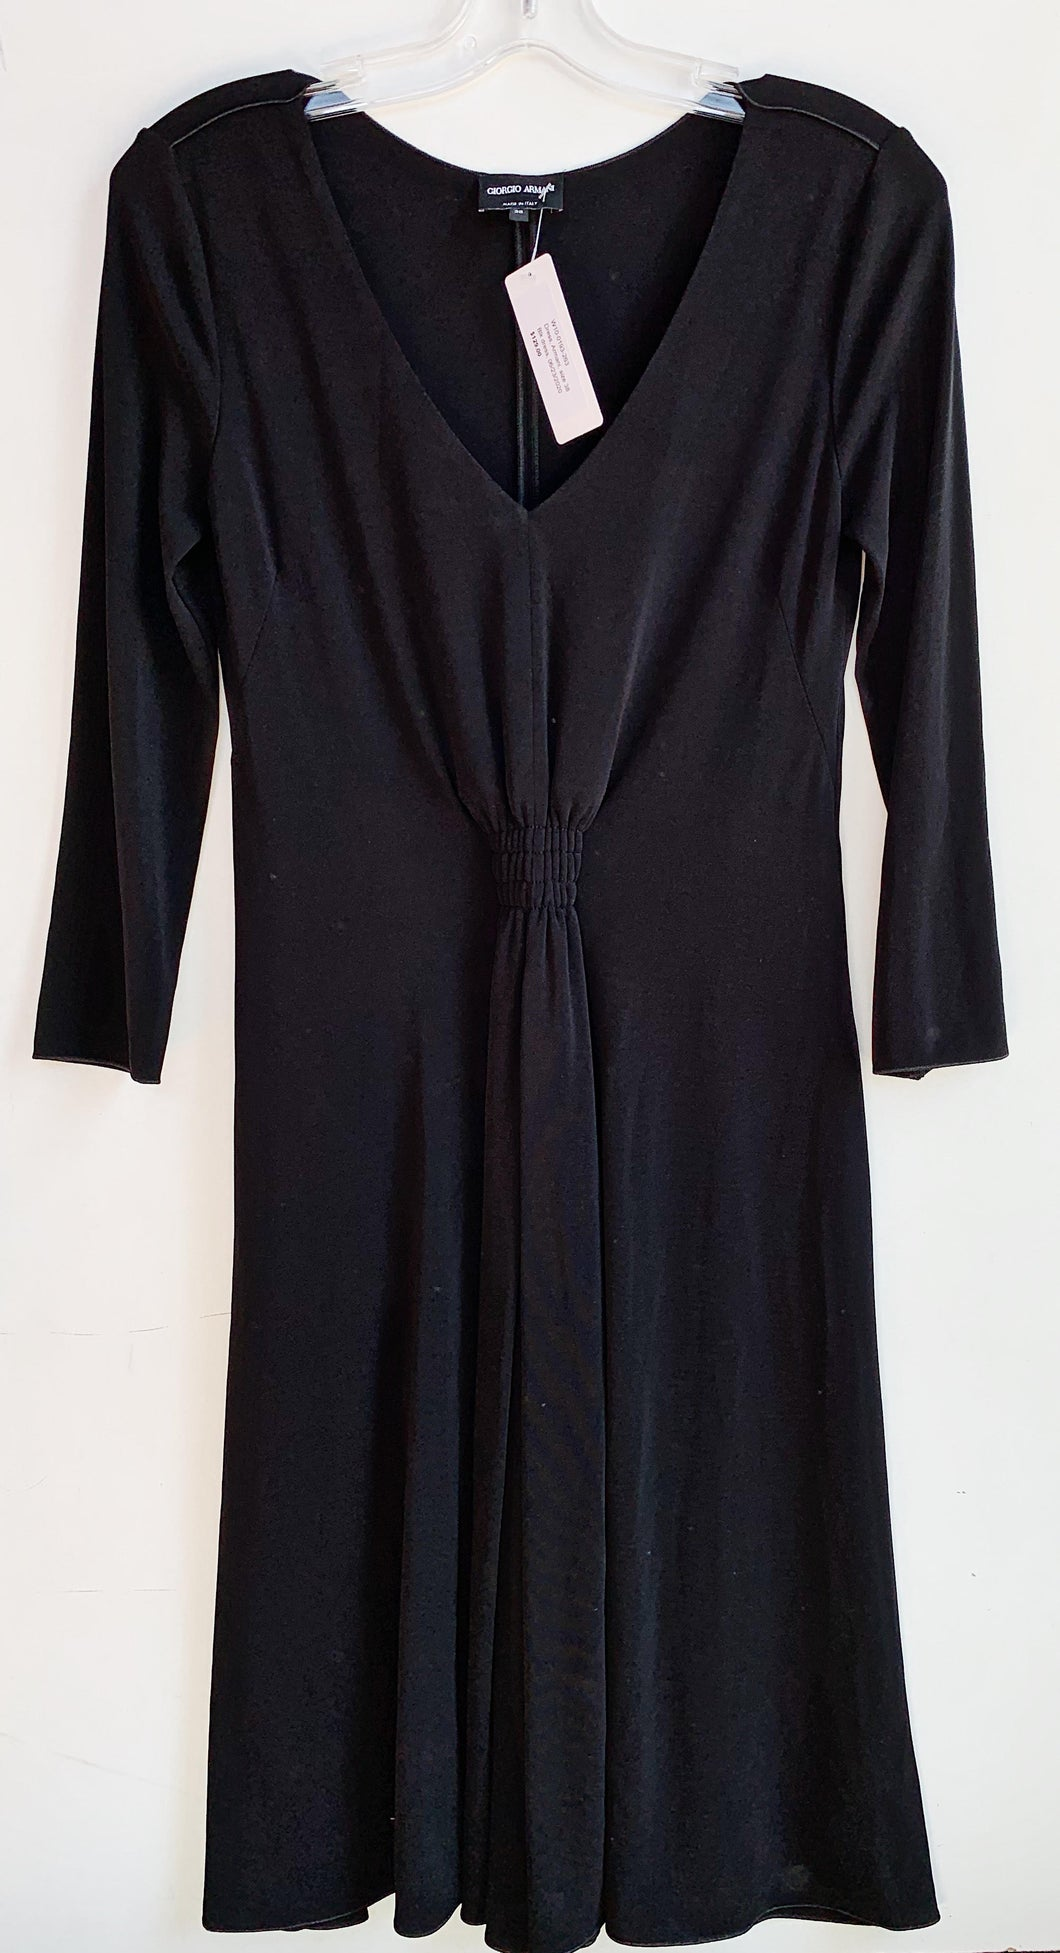 This flattering black Armani dress is perfect for a night out on the town. Made of 95% Viscose and 5 % Elastane. Size S, new condition. Available at Victoria Park.